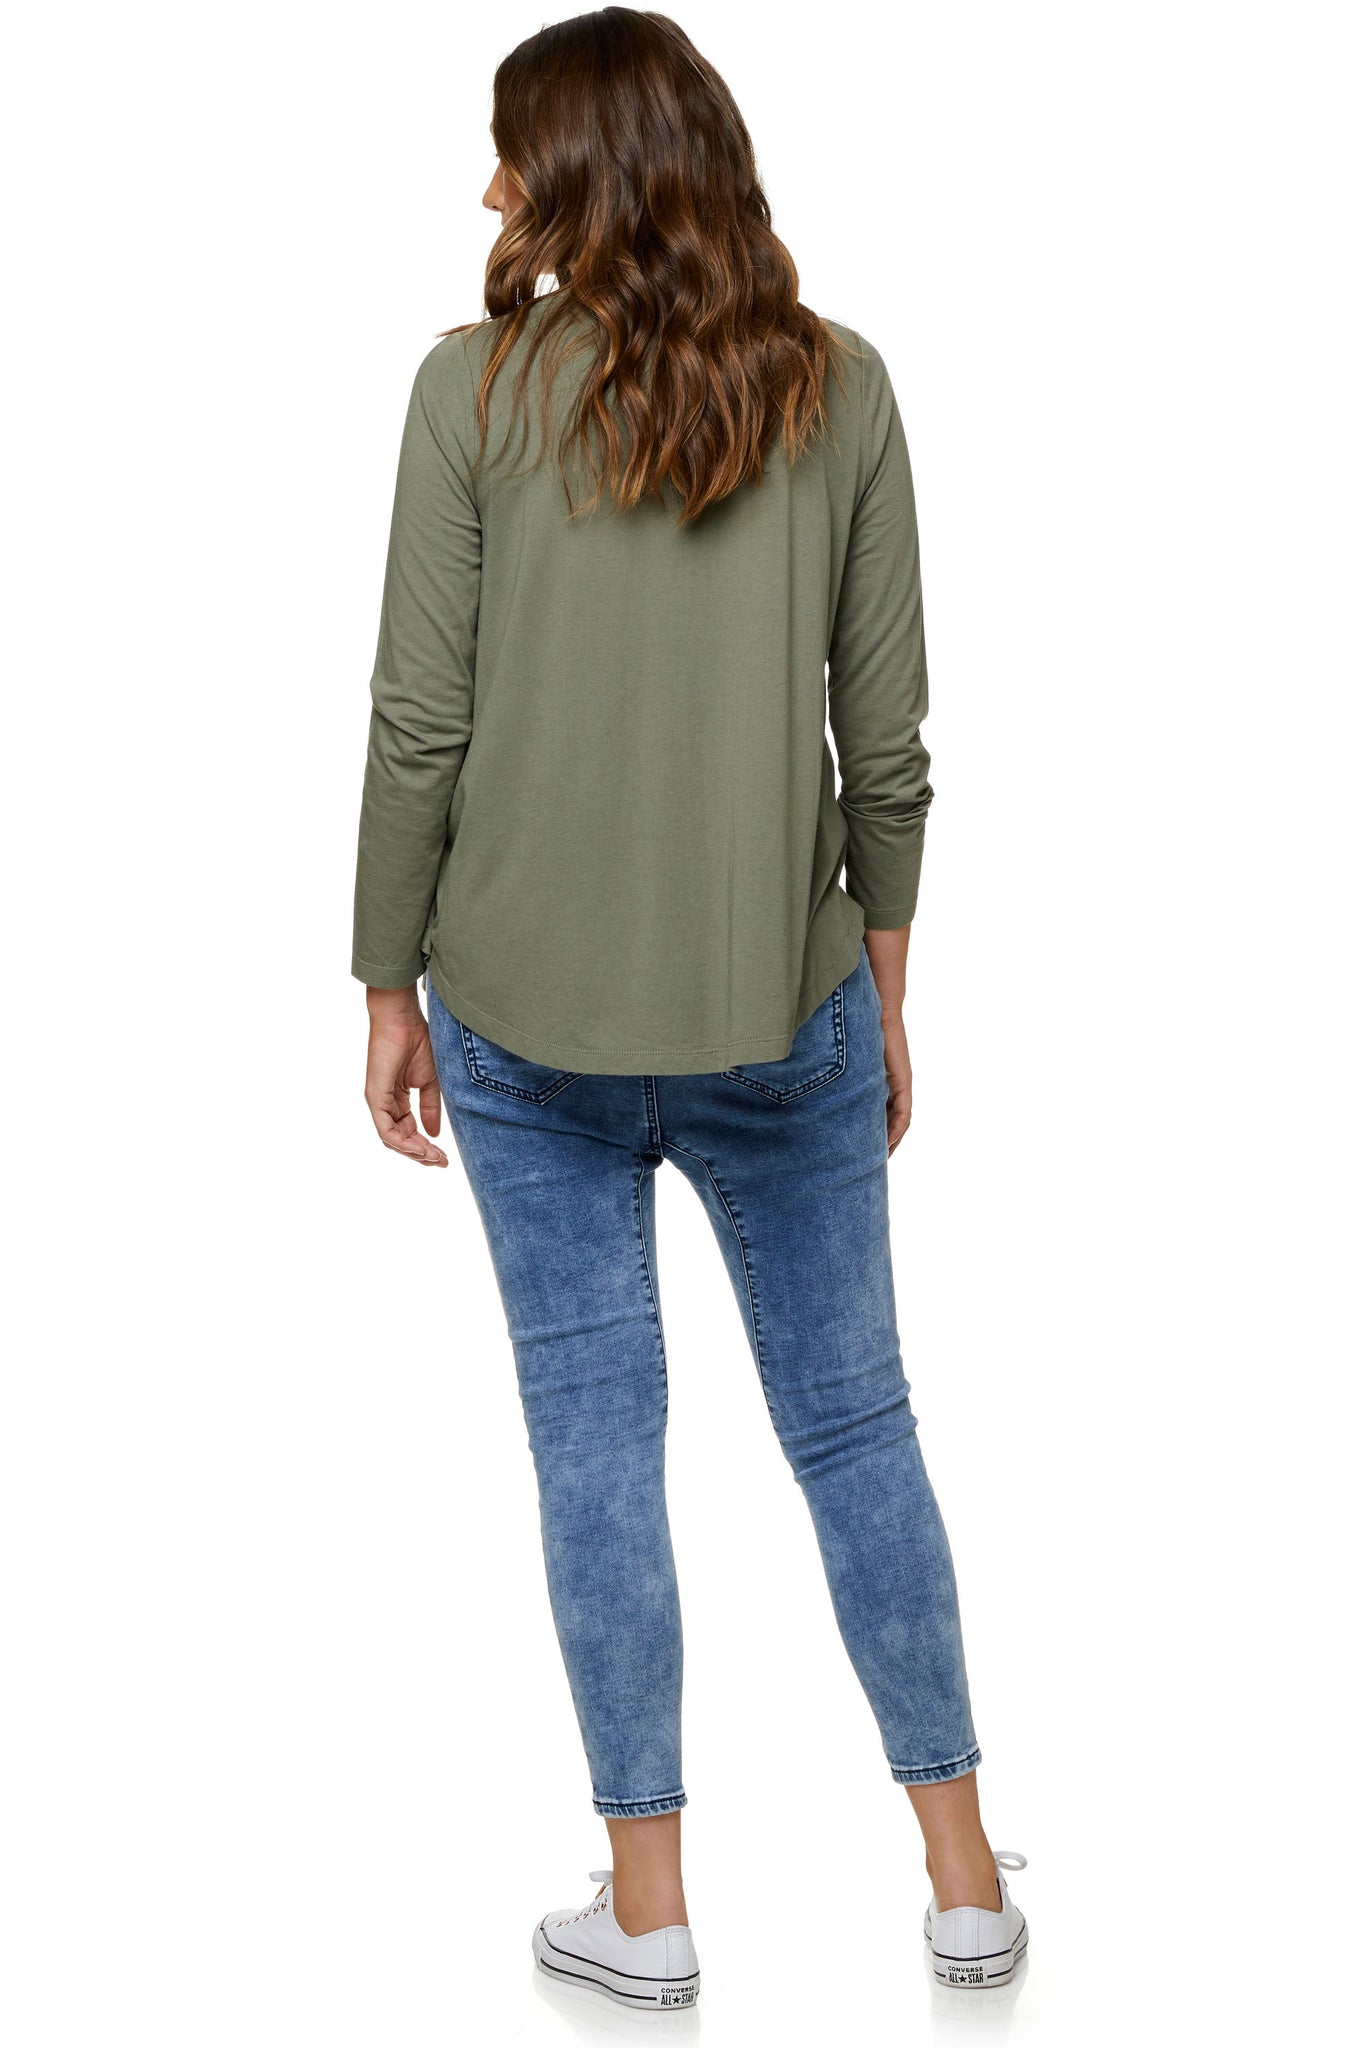 Long sleeve maternity top in khaki 8